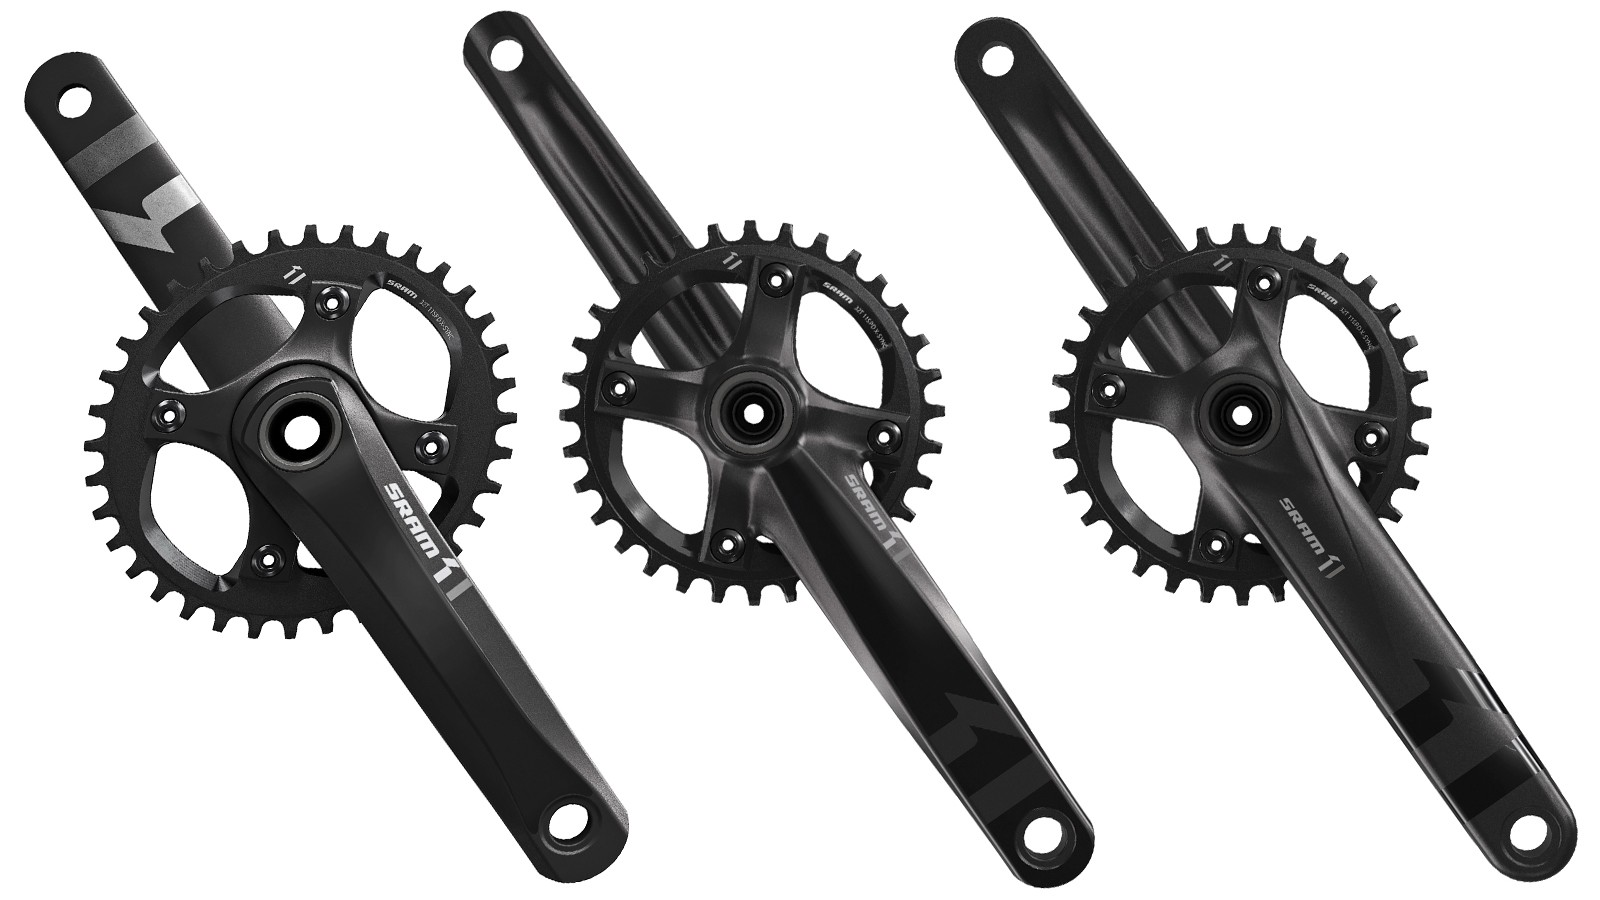 SRAM is releasing a trio of aluminum cranksets as part of the X1 rollout